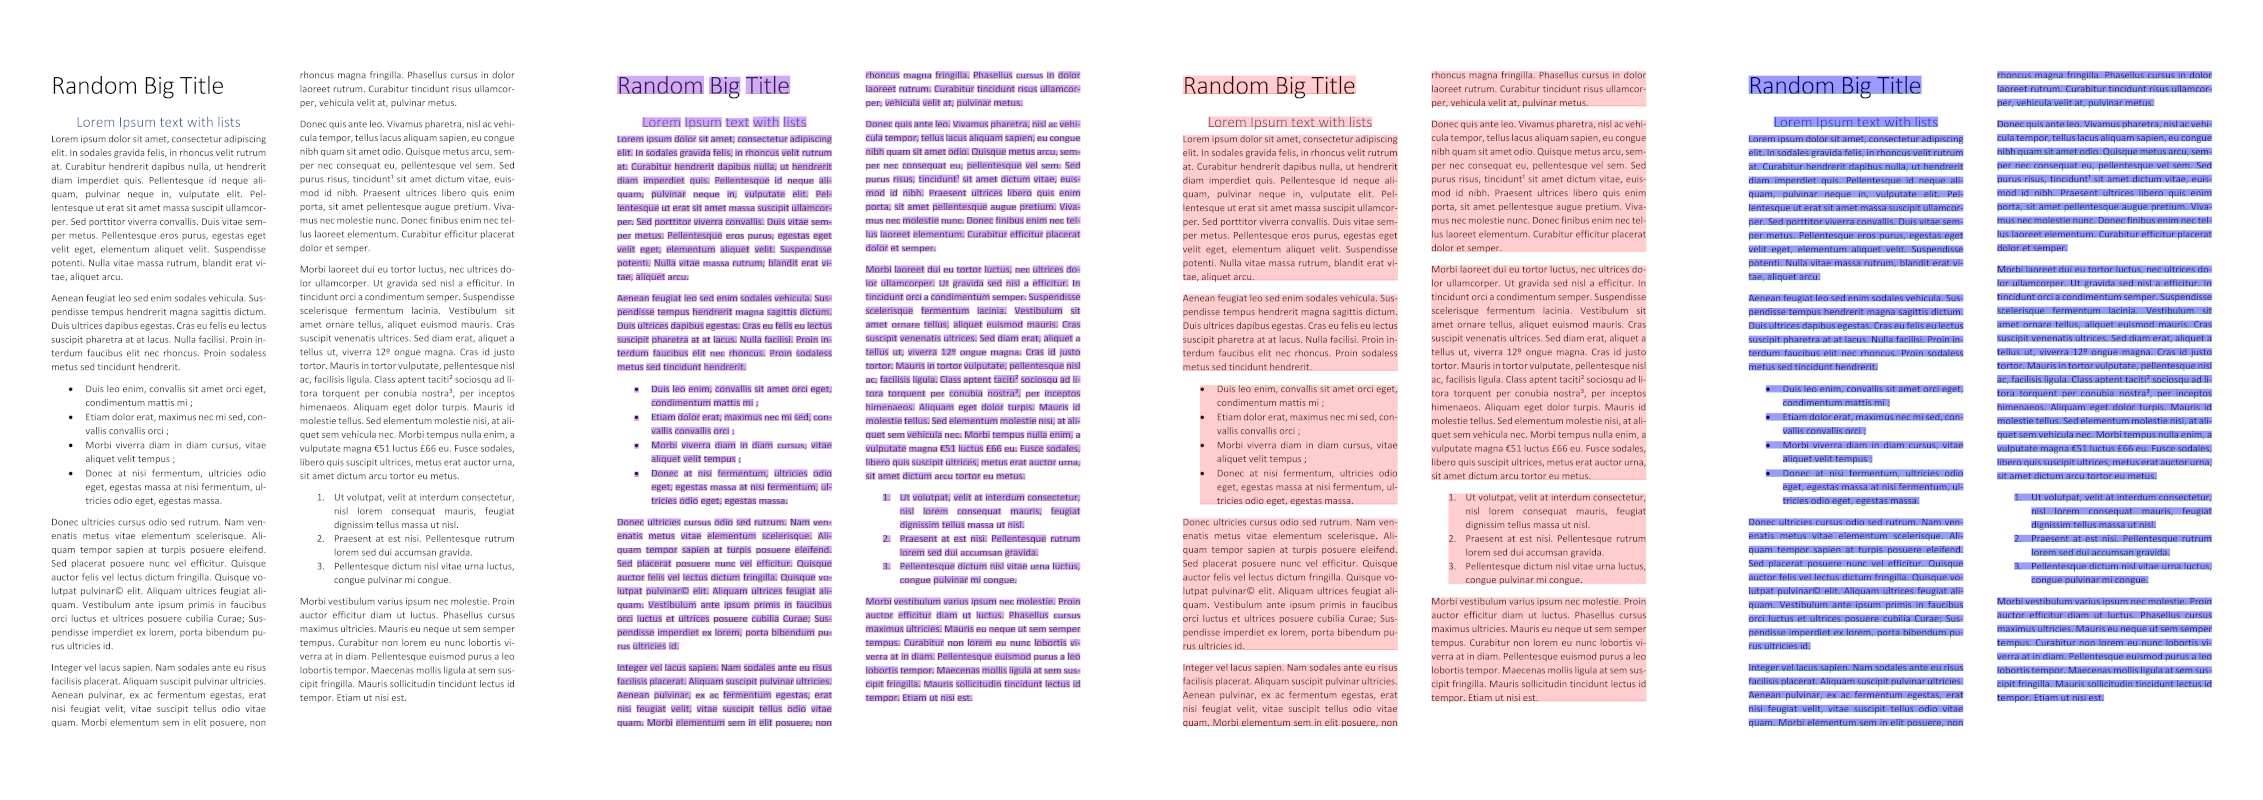 Output is a single page with two columns and some bulleted lists. The page has been divided into regions bounded in blue and words bounded in red.